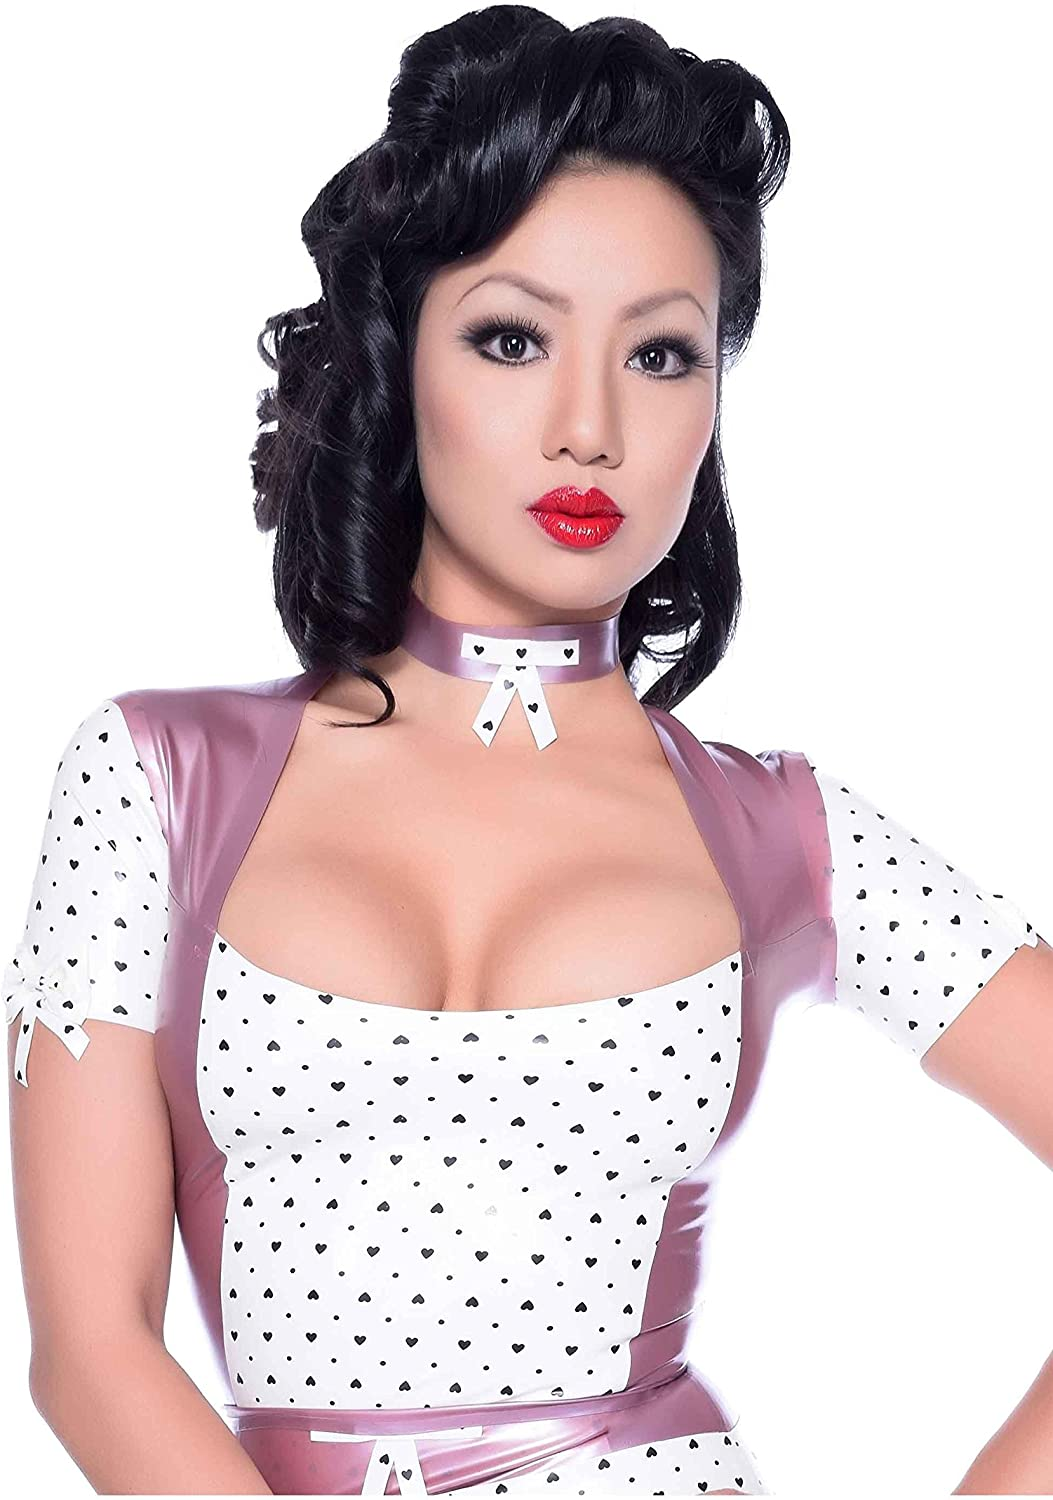 Obsessive Love Top Pearl Sheen Trim New Max 83% OFF mail order Warm White Lilac with